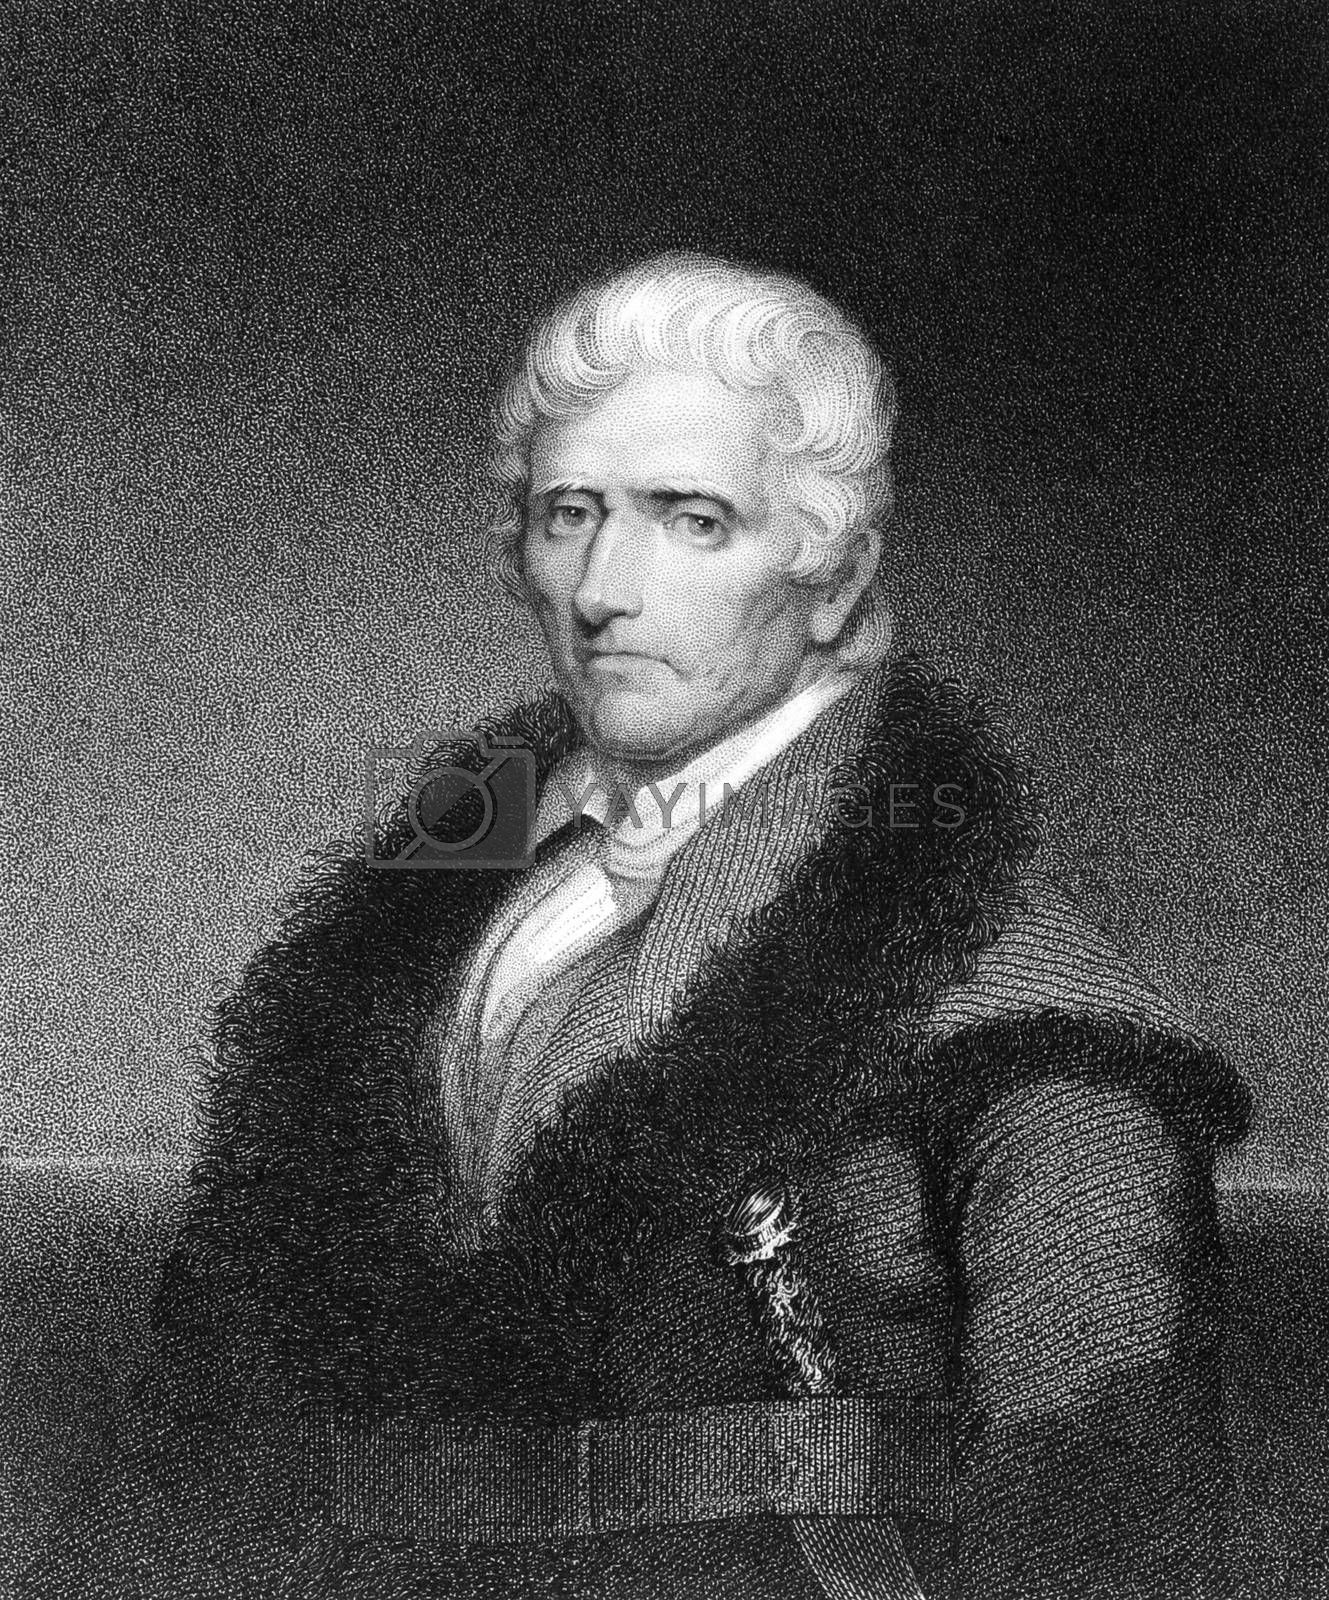 Daniel Boone (1734-1820) on engraving from 1835. American pioneer, explorer, and frontiersman. Engraved by J.B.Longacre and published in''National Portrait Gallery of Distinguished Americans Volume II'',USA,1835.